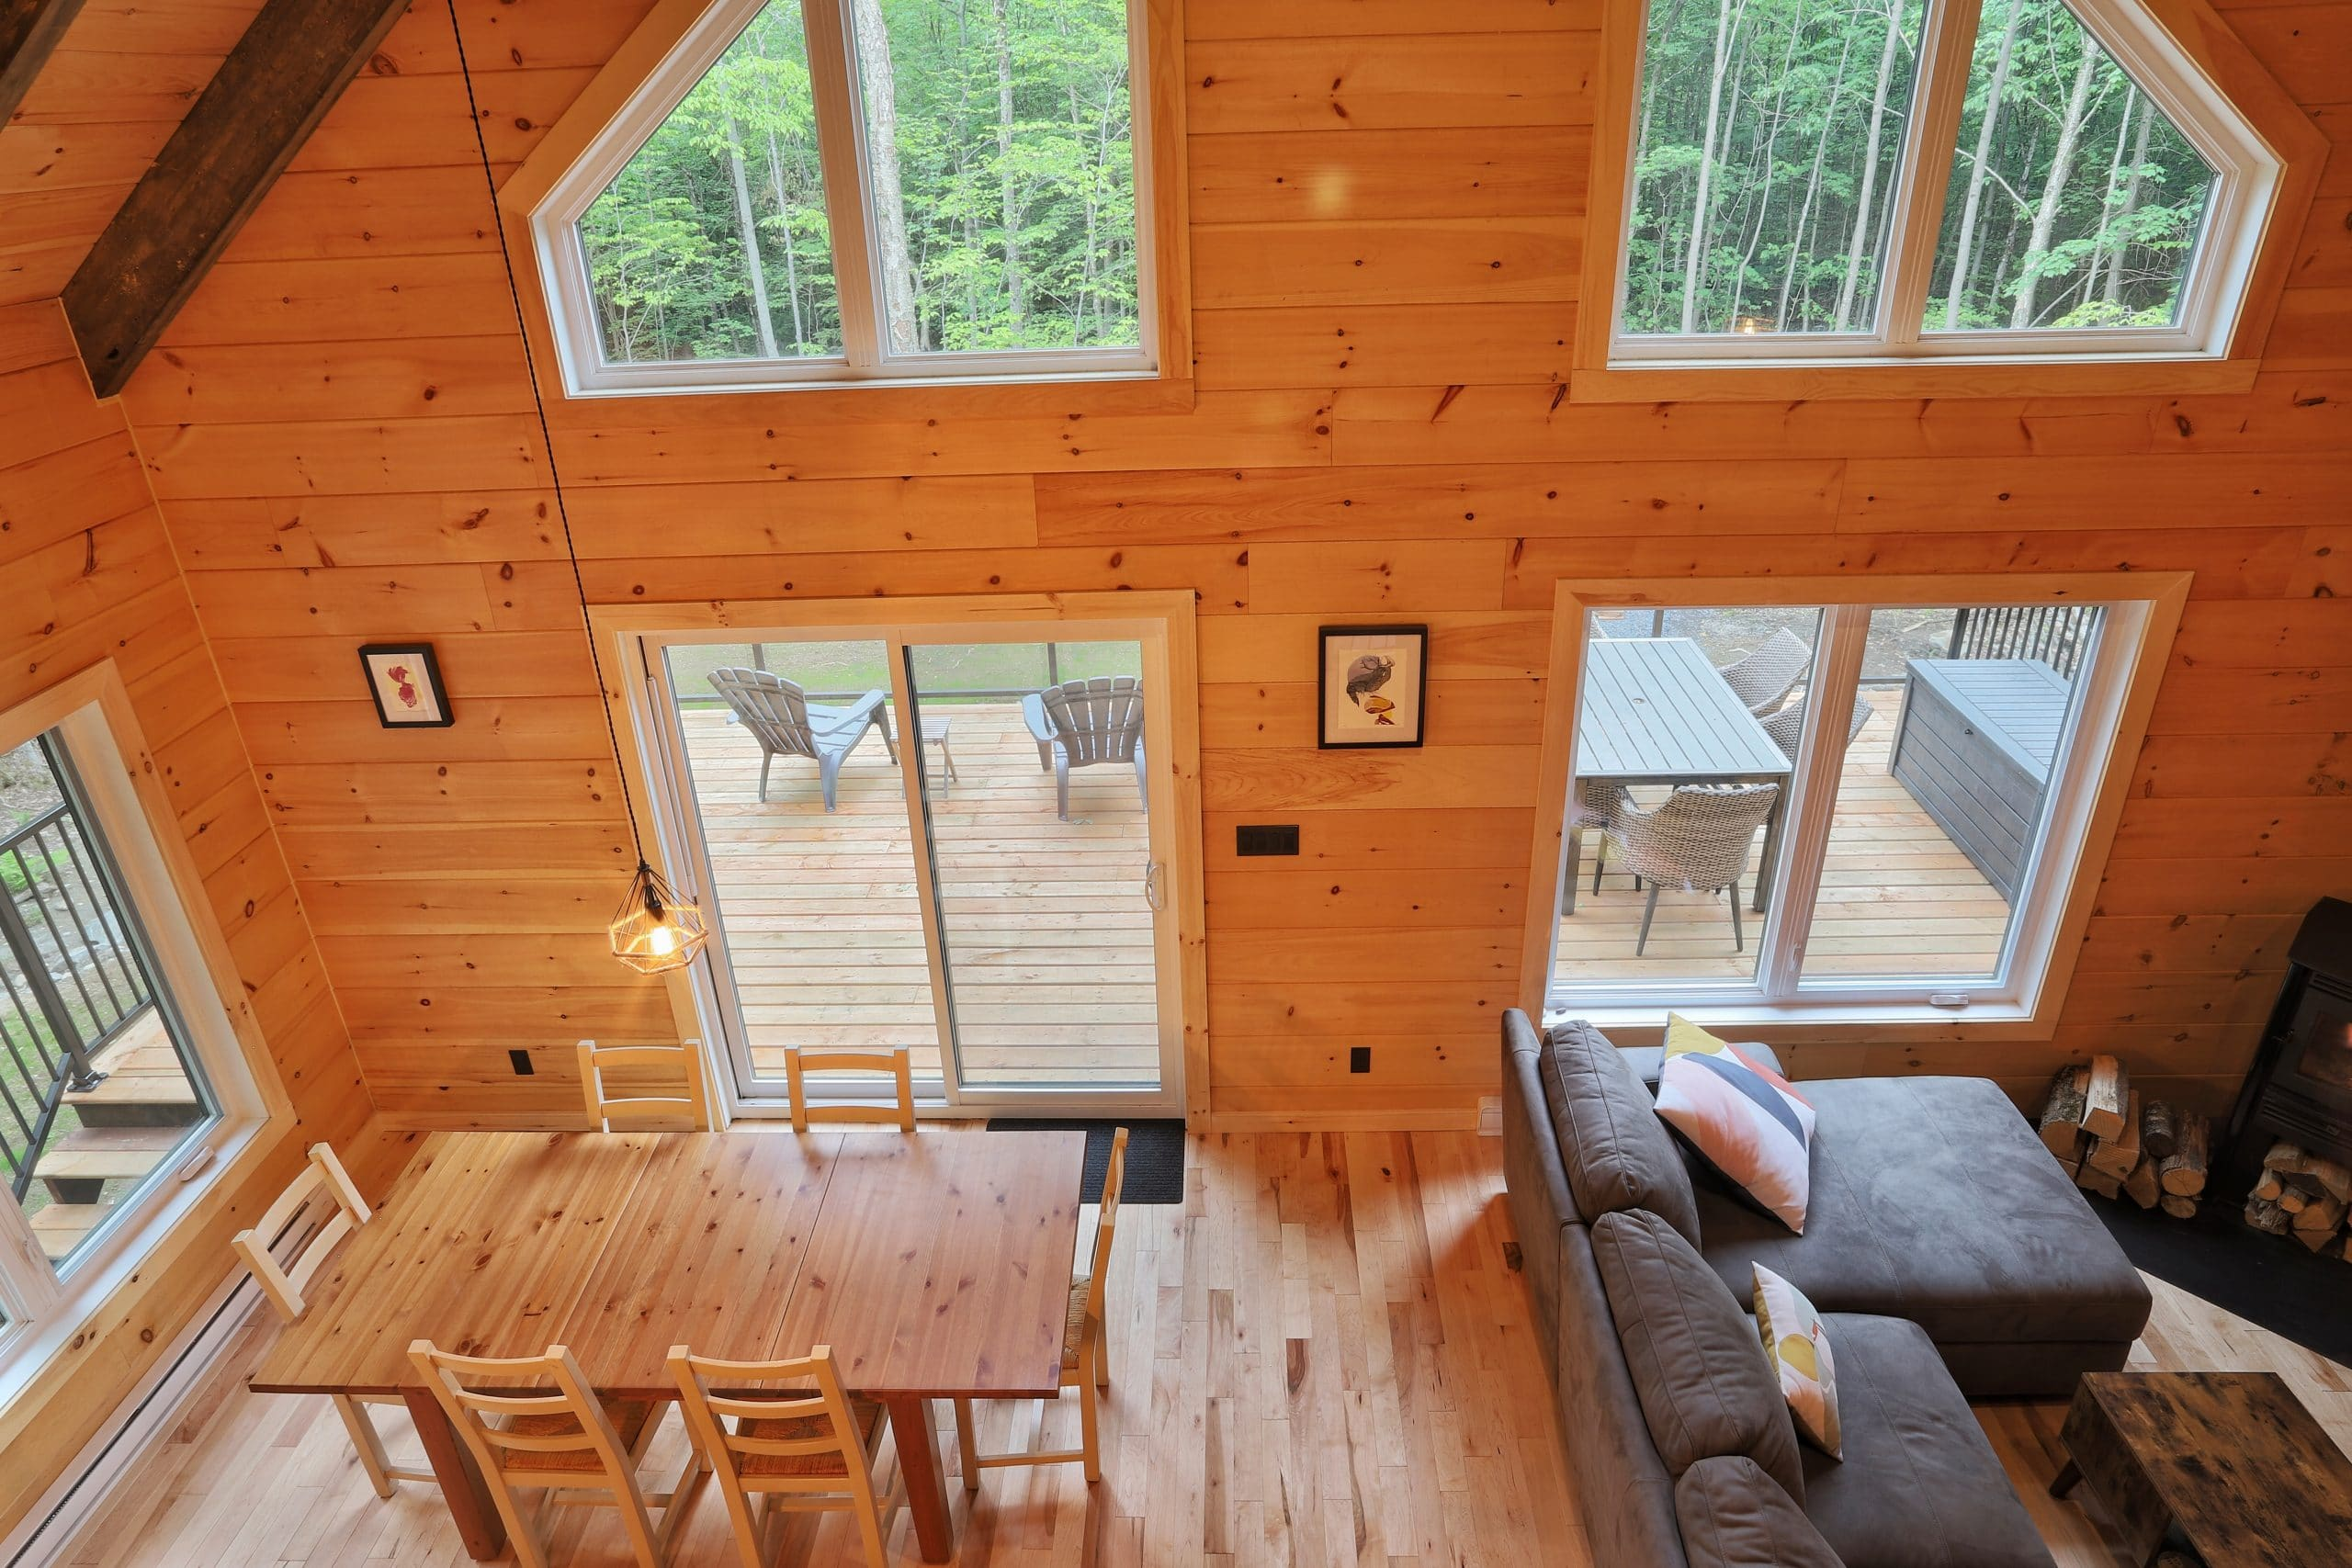 Photos of the chalet, number 6